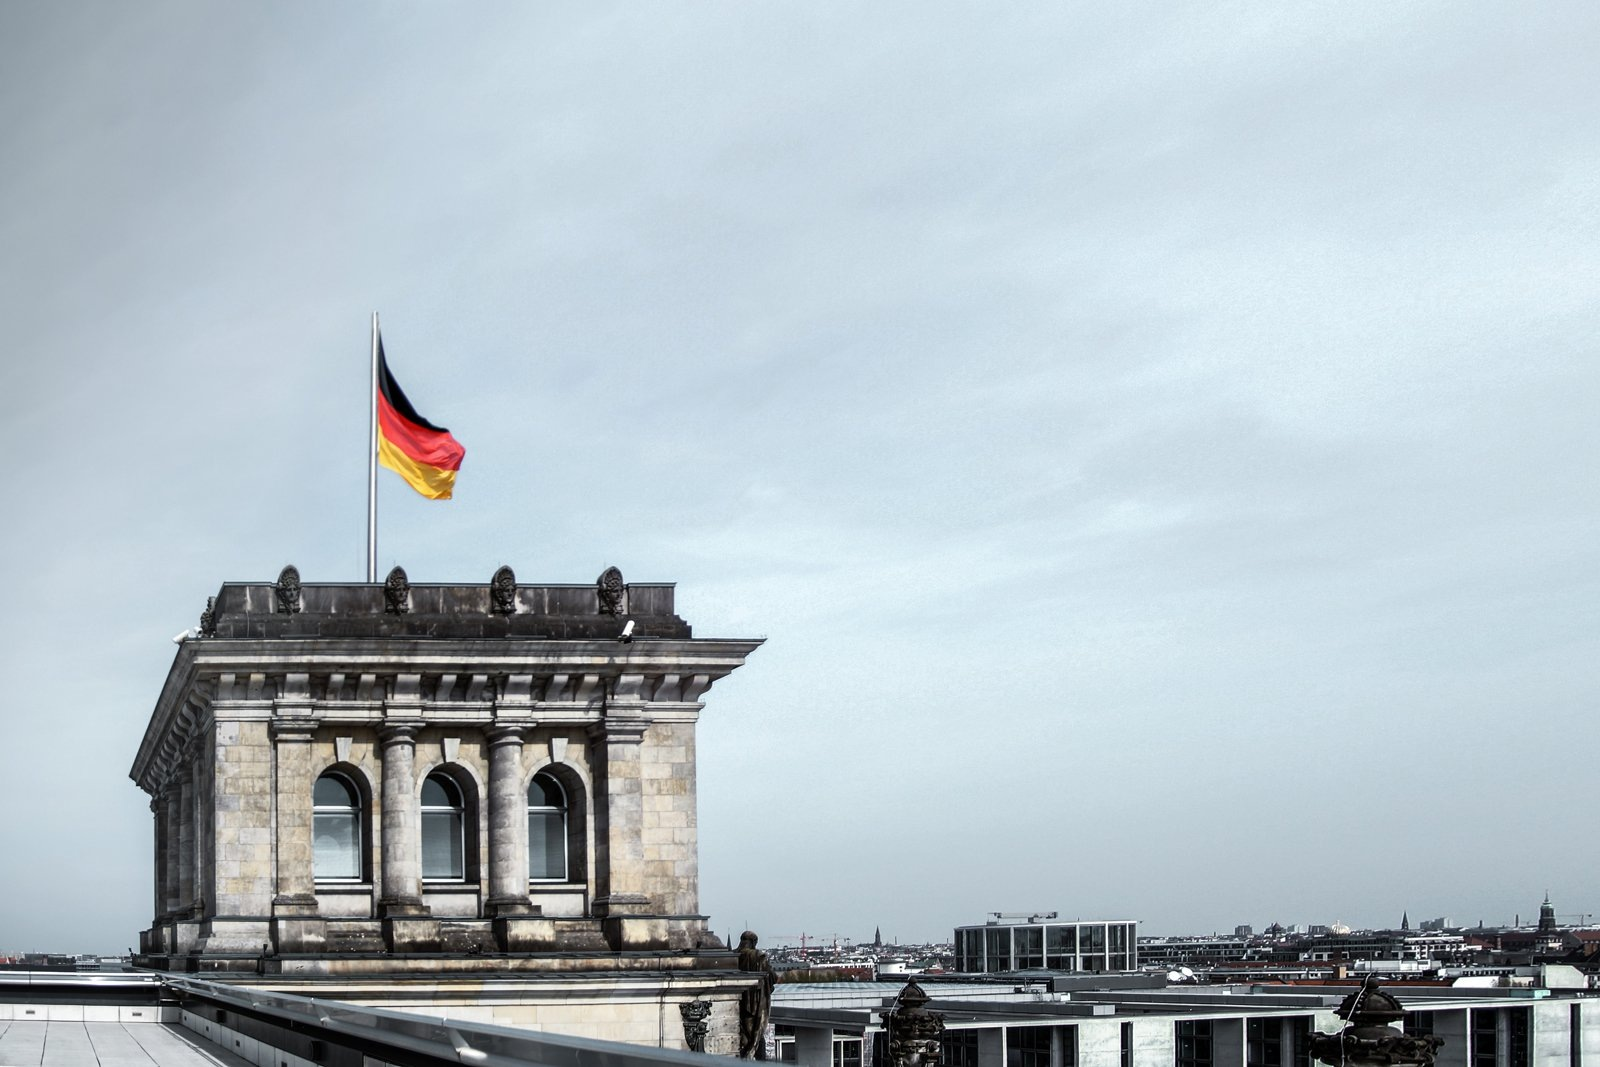 Interview with Sebastian: German flag over the Bundestag